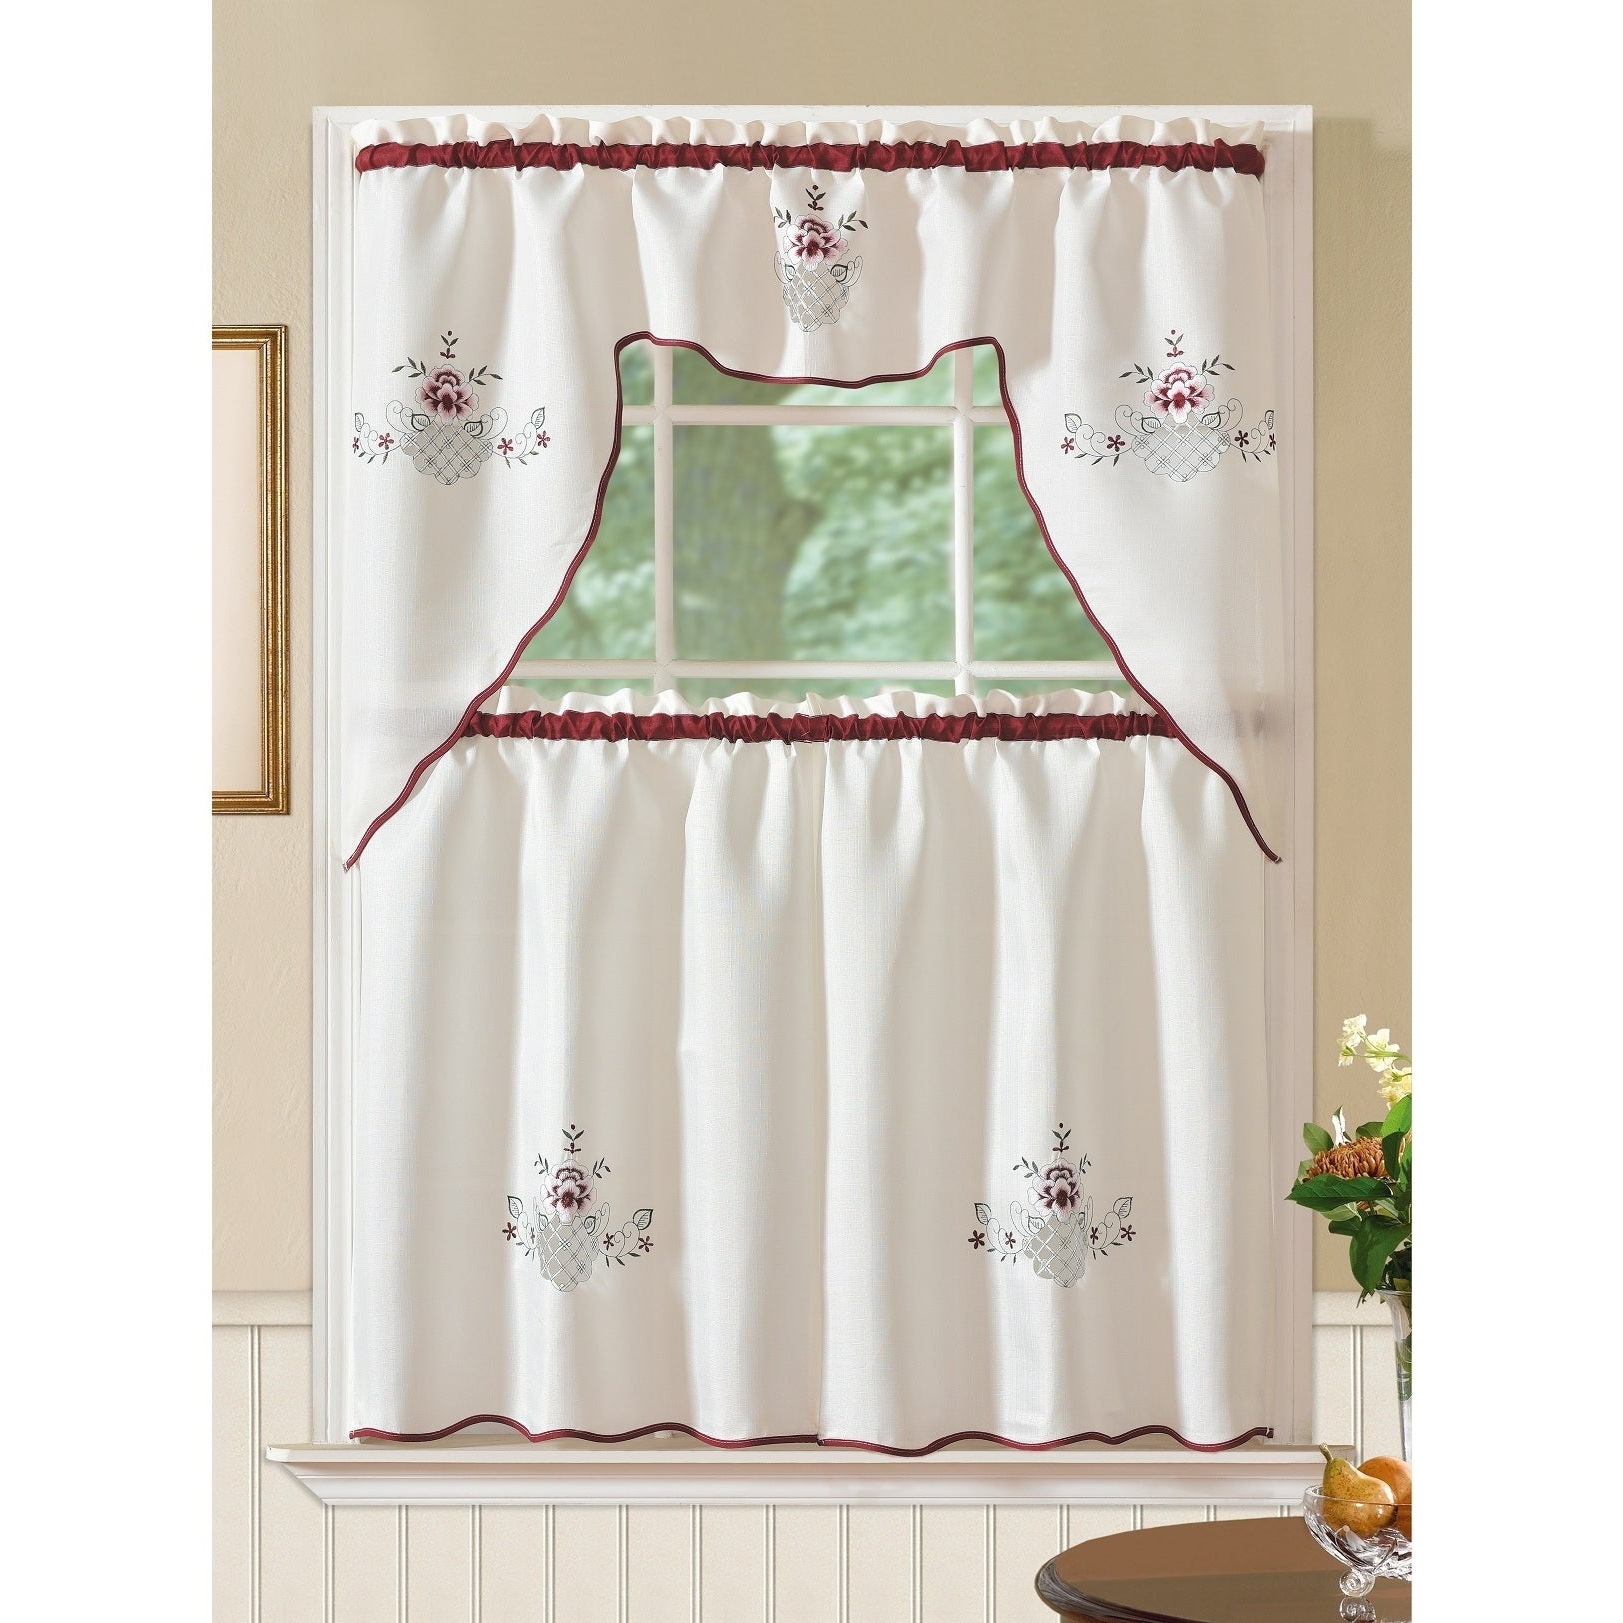 Recent Rt Designers Collection Imperial Flower Jacquard Tier And Valance Kitchen  Curtain Set With Regard To Grace Cinnabar 5 Piece Curtain Tier And Swag Sets (Gallery 10 of 20)